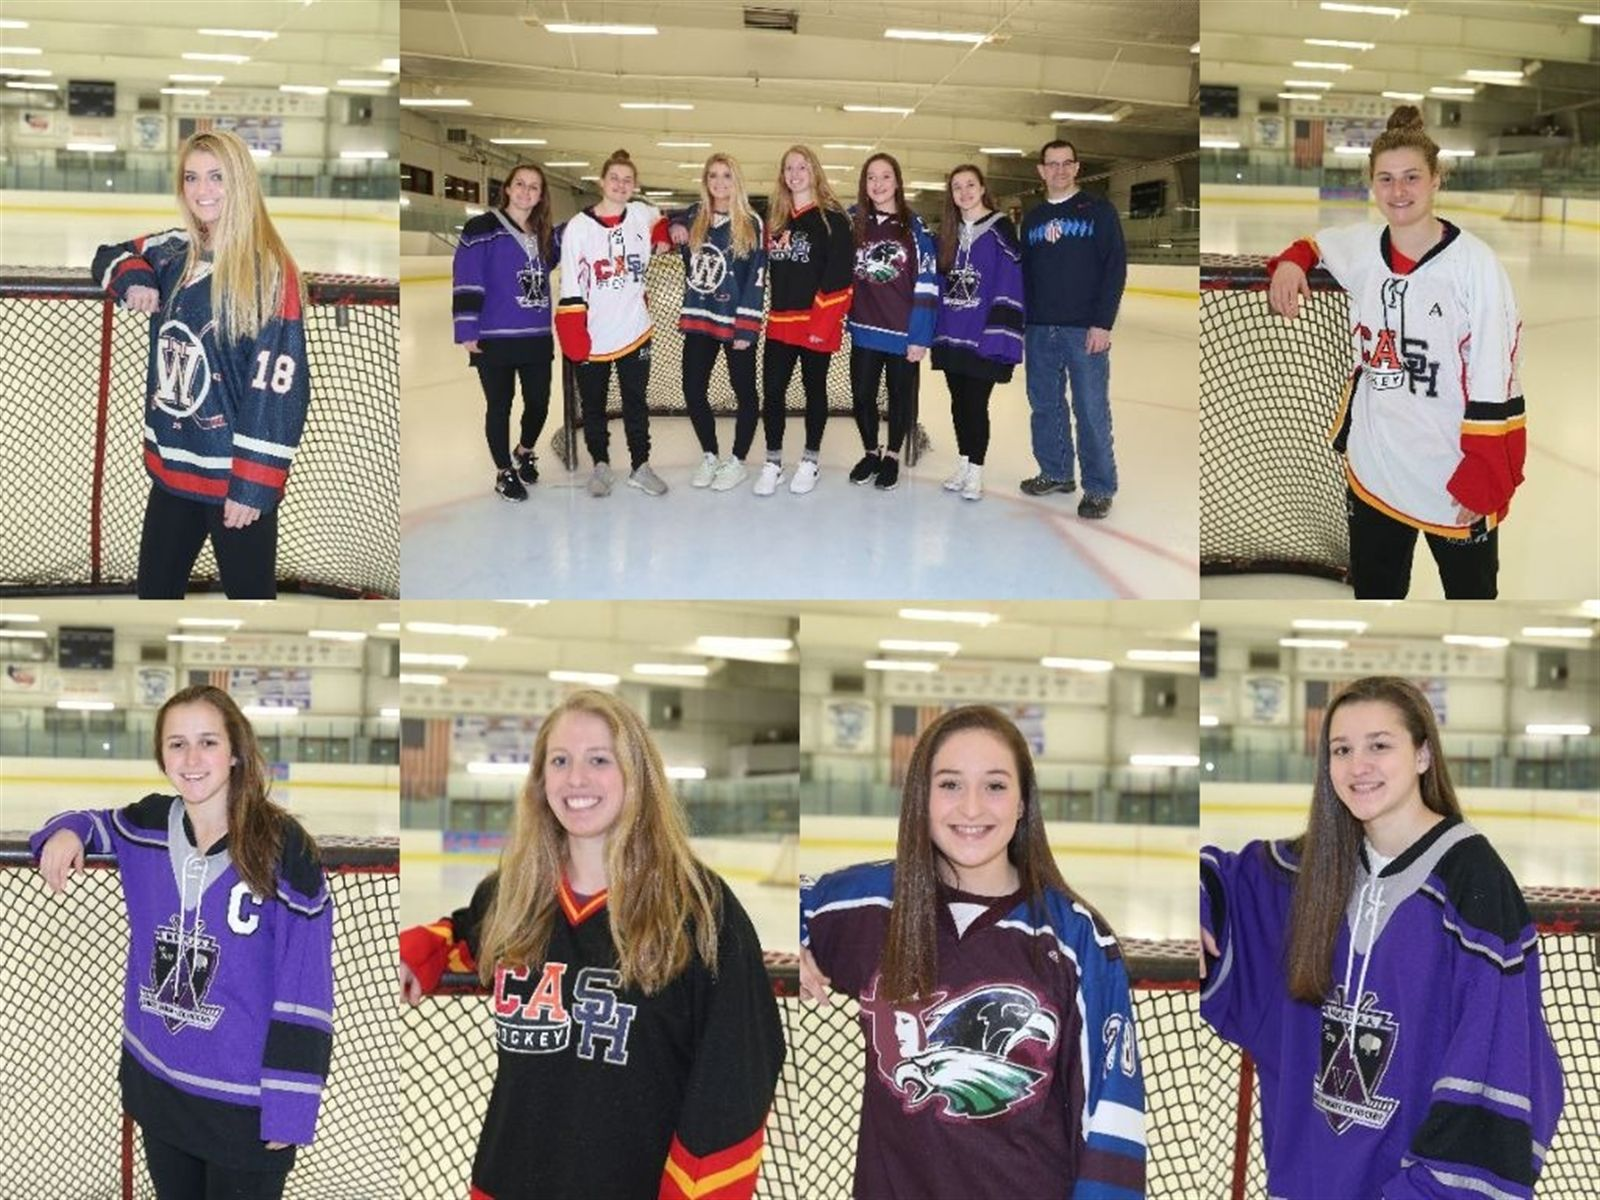 After another memorable hockey season, these were the top girls hockey players in the Western New York Hockey Federation.